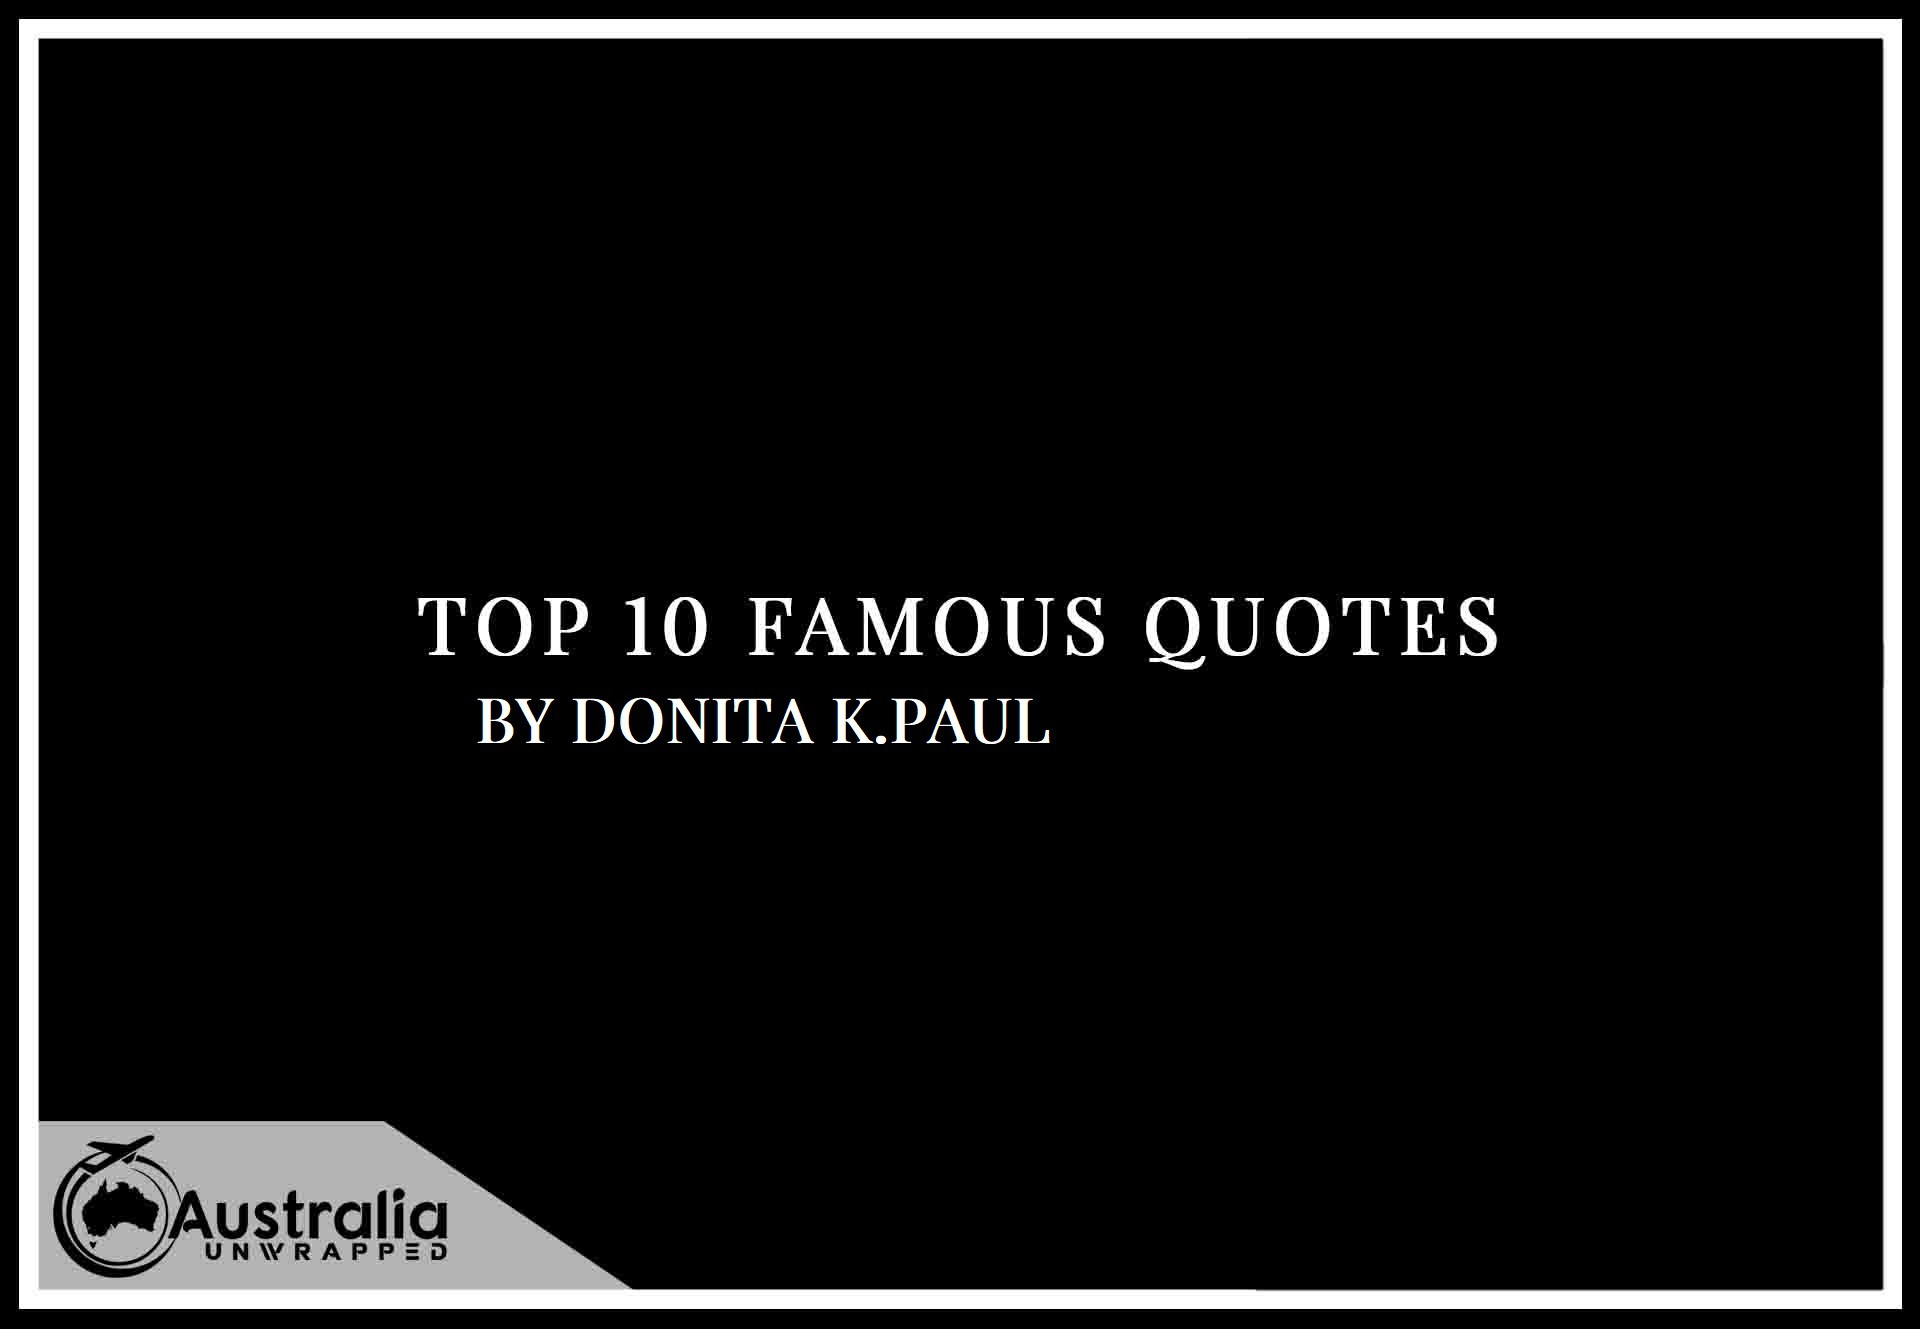 Top 10 Famous Quotes by Author Donita K. Paul